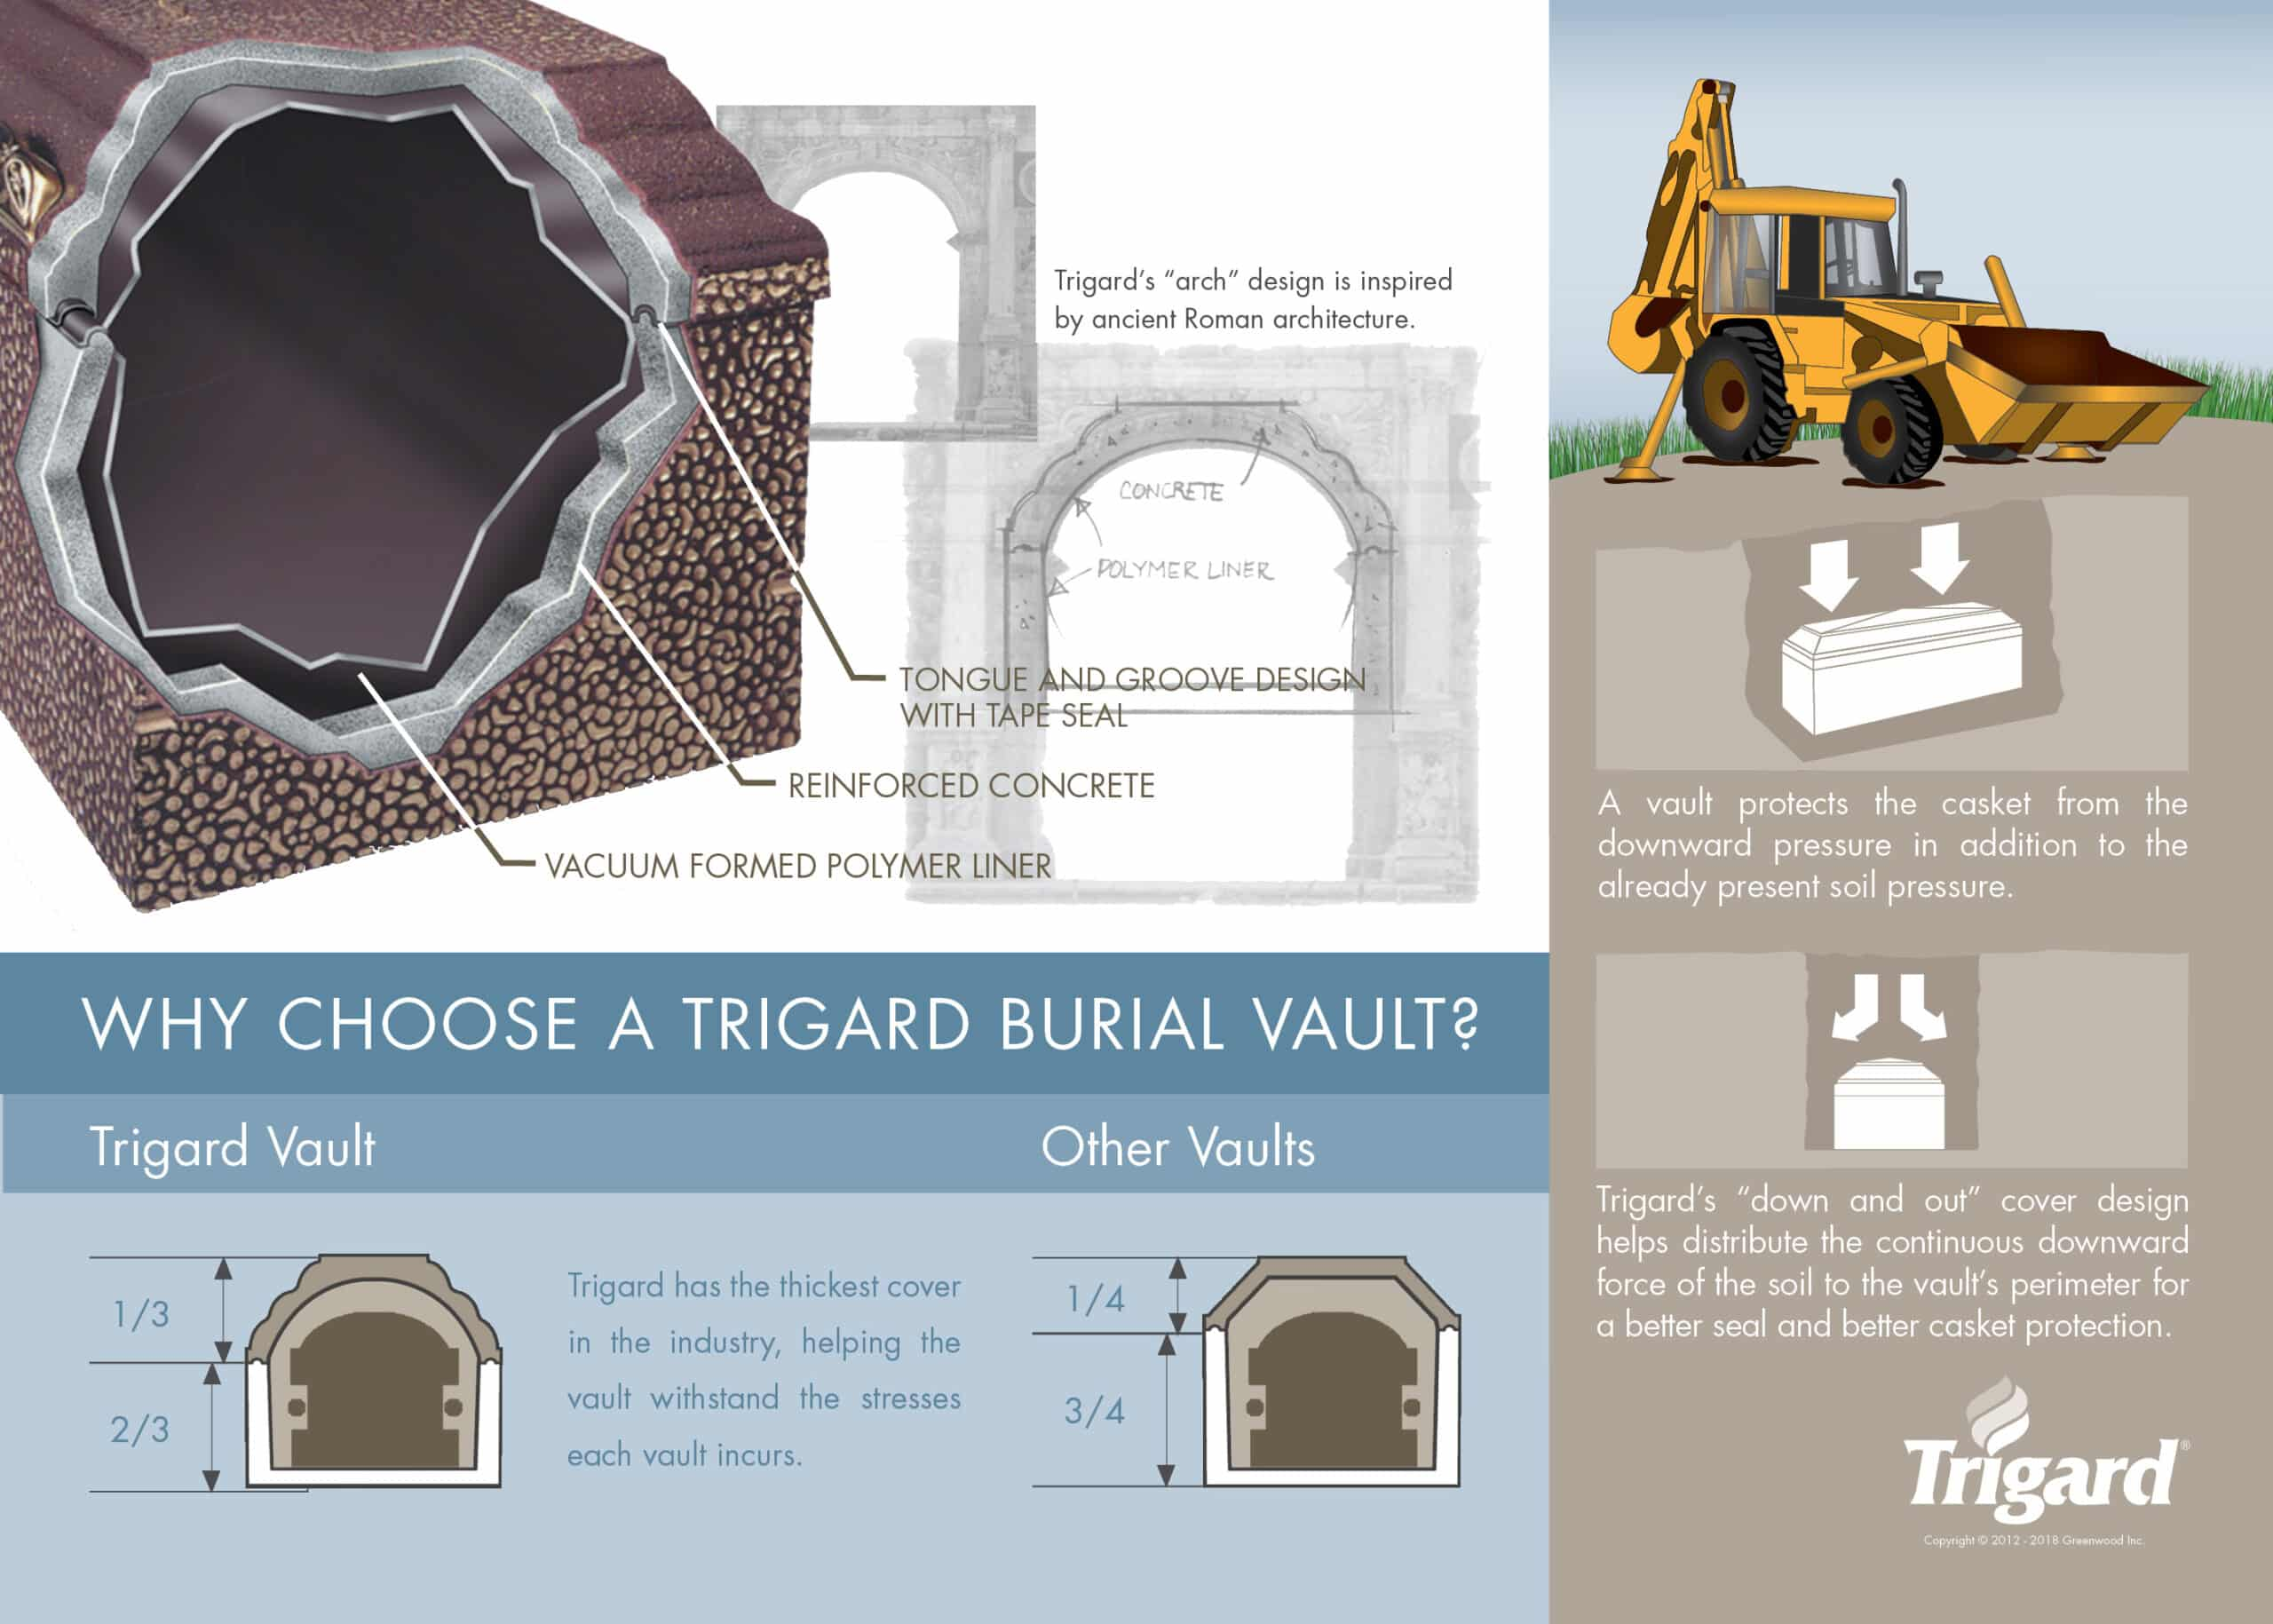 Why a Burial Vault is Better than a Concrete Box - Trigard